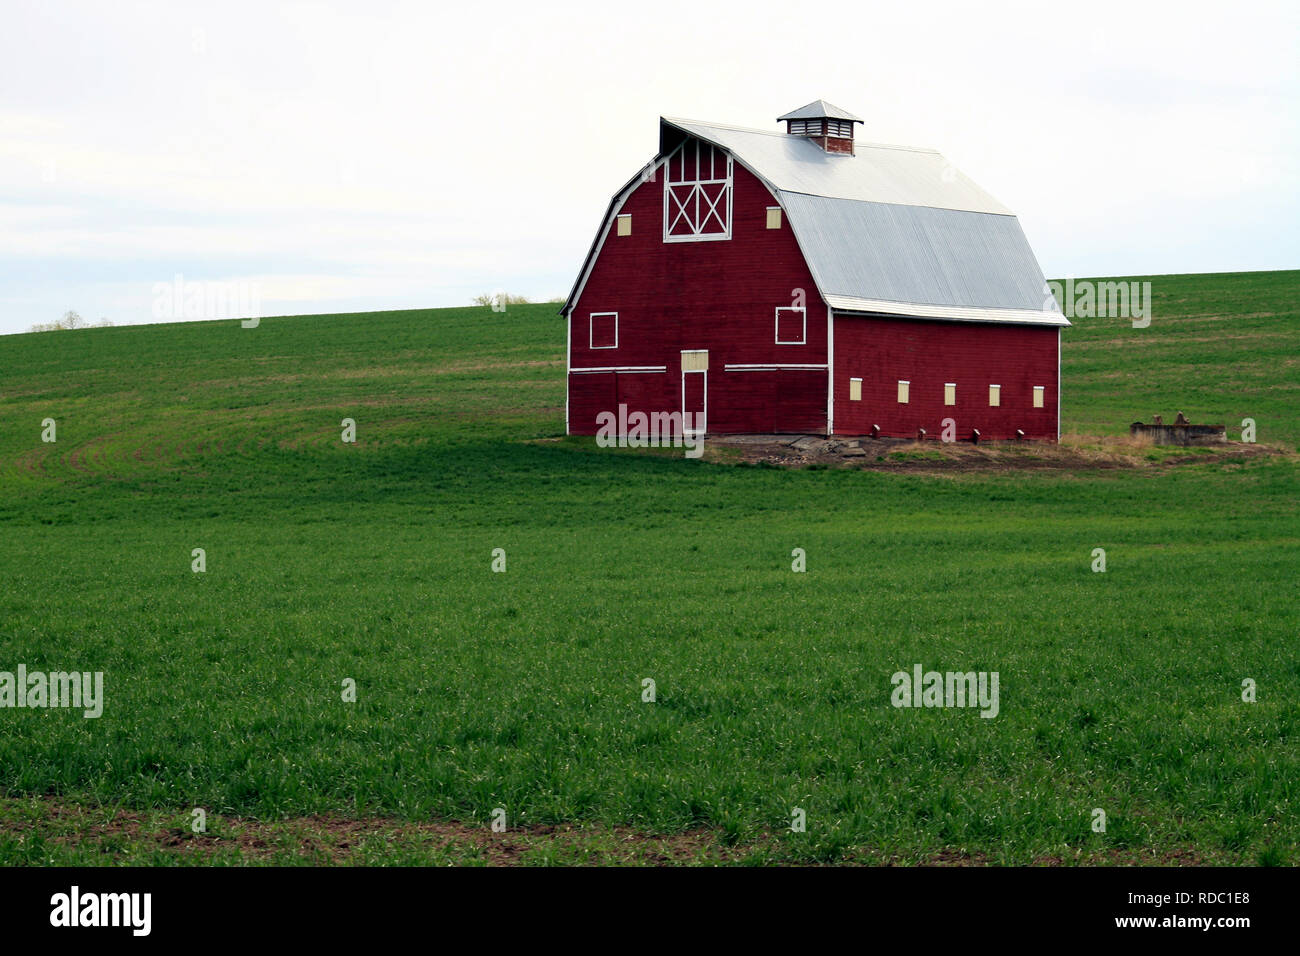 A Red Barn in the wheat field of the Palouse, Washington State, USA - Stock Image